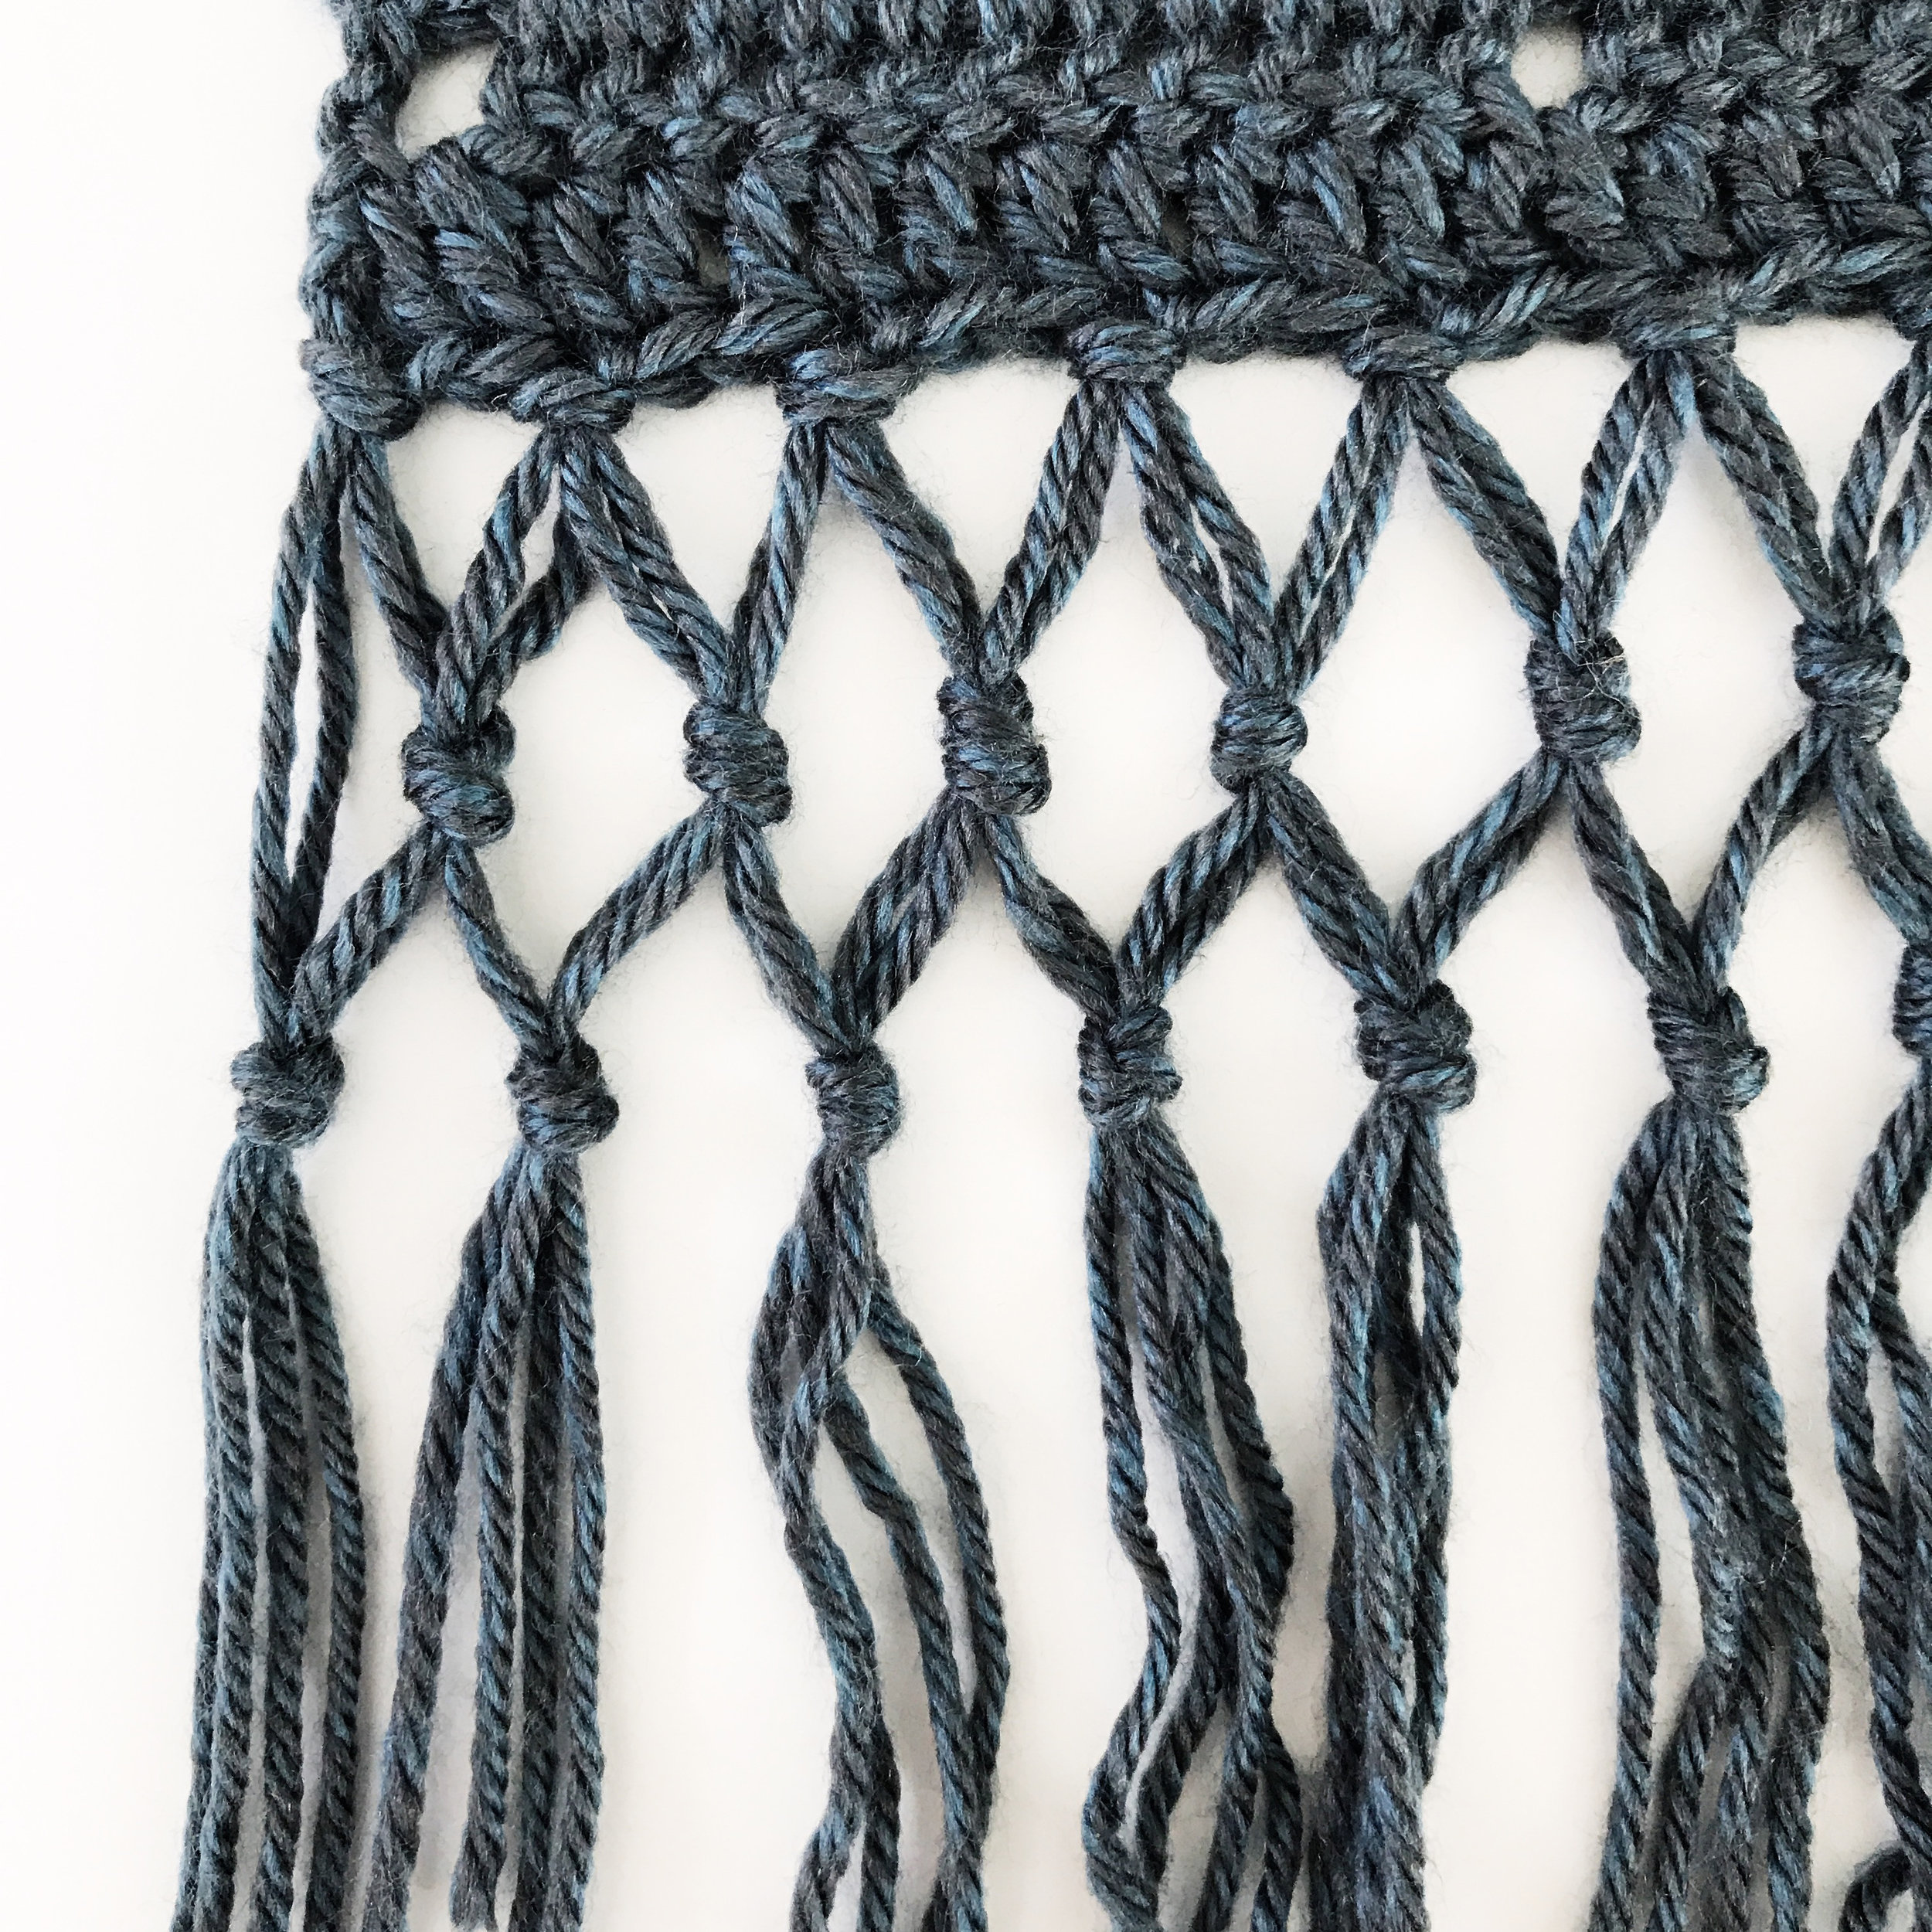 Rebozo Wrap pattern by Two of Wands macrame detailing